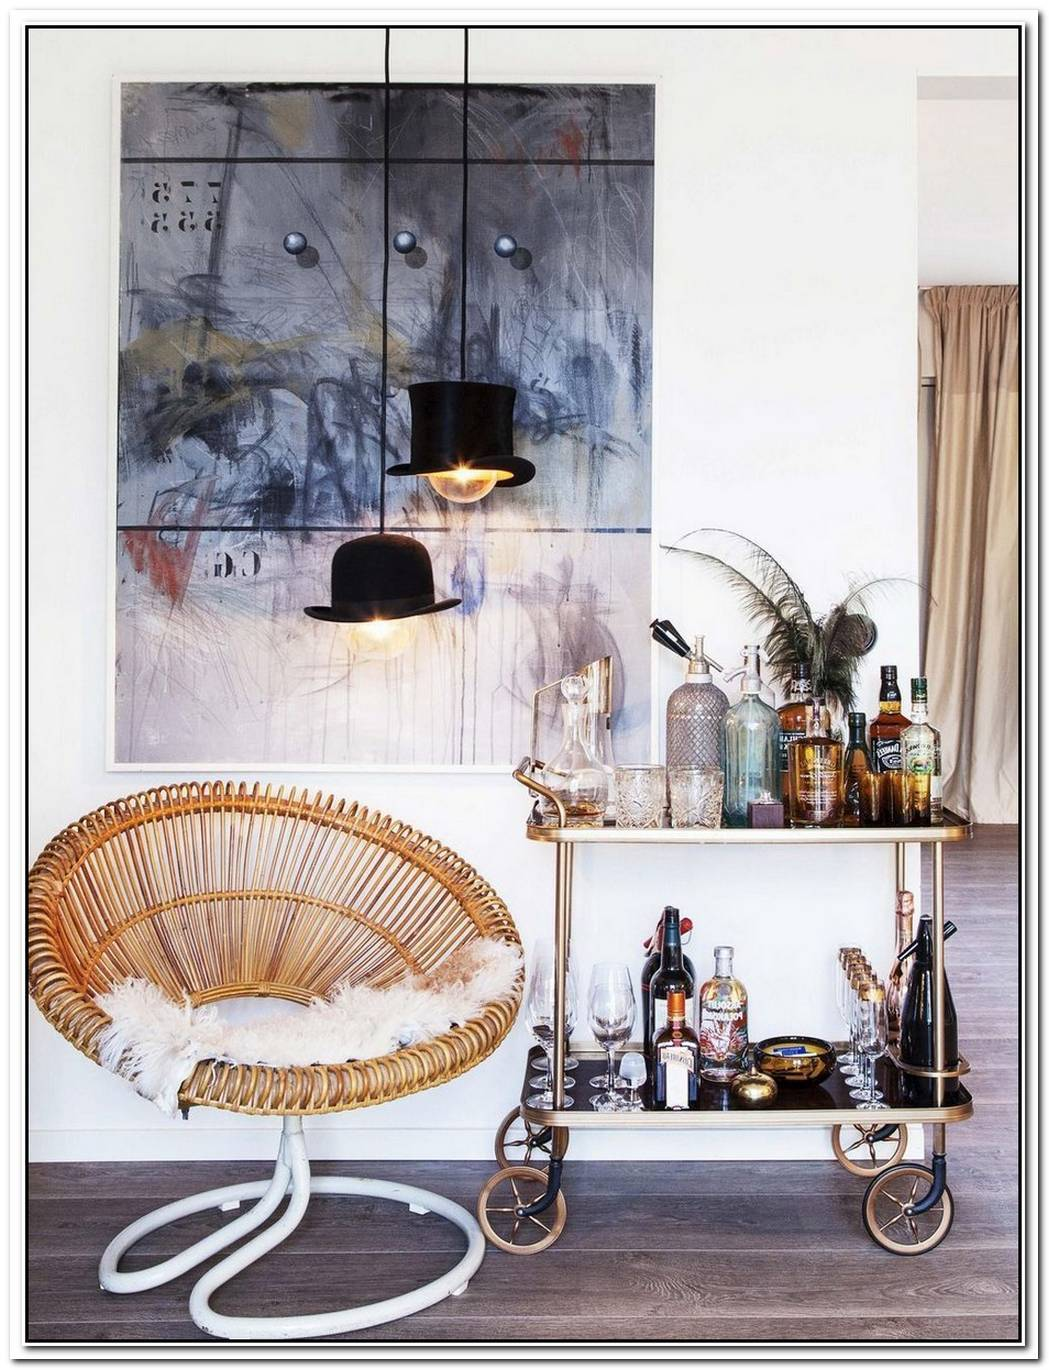 12 Ideas For Making Your Bar Cart Truly Swanky